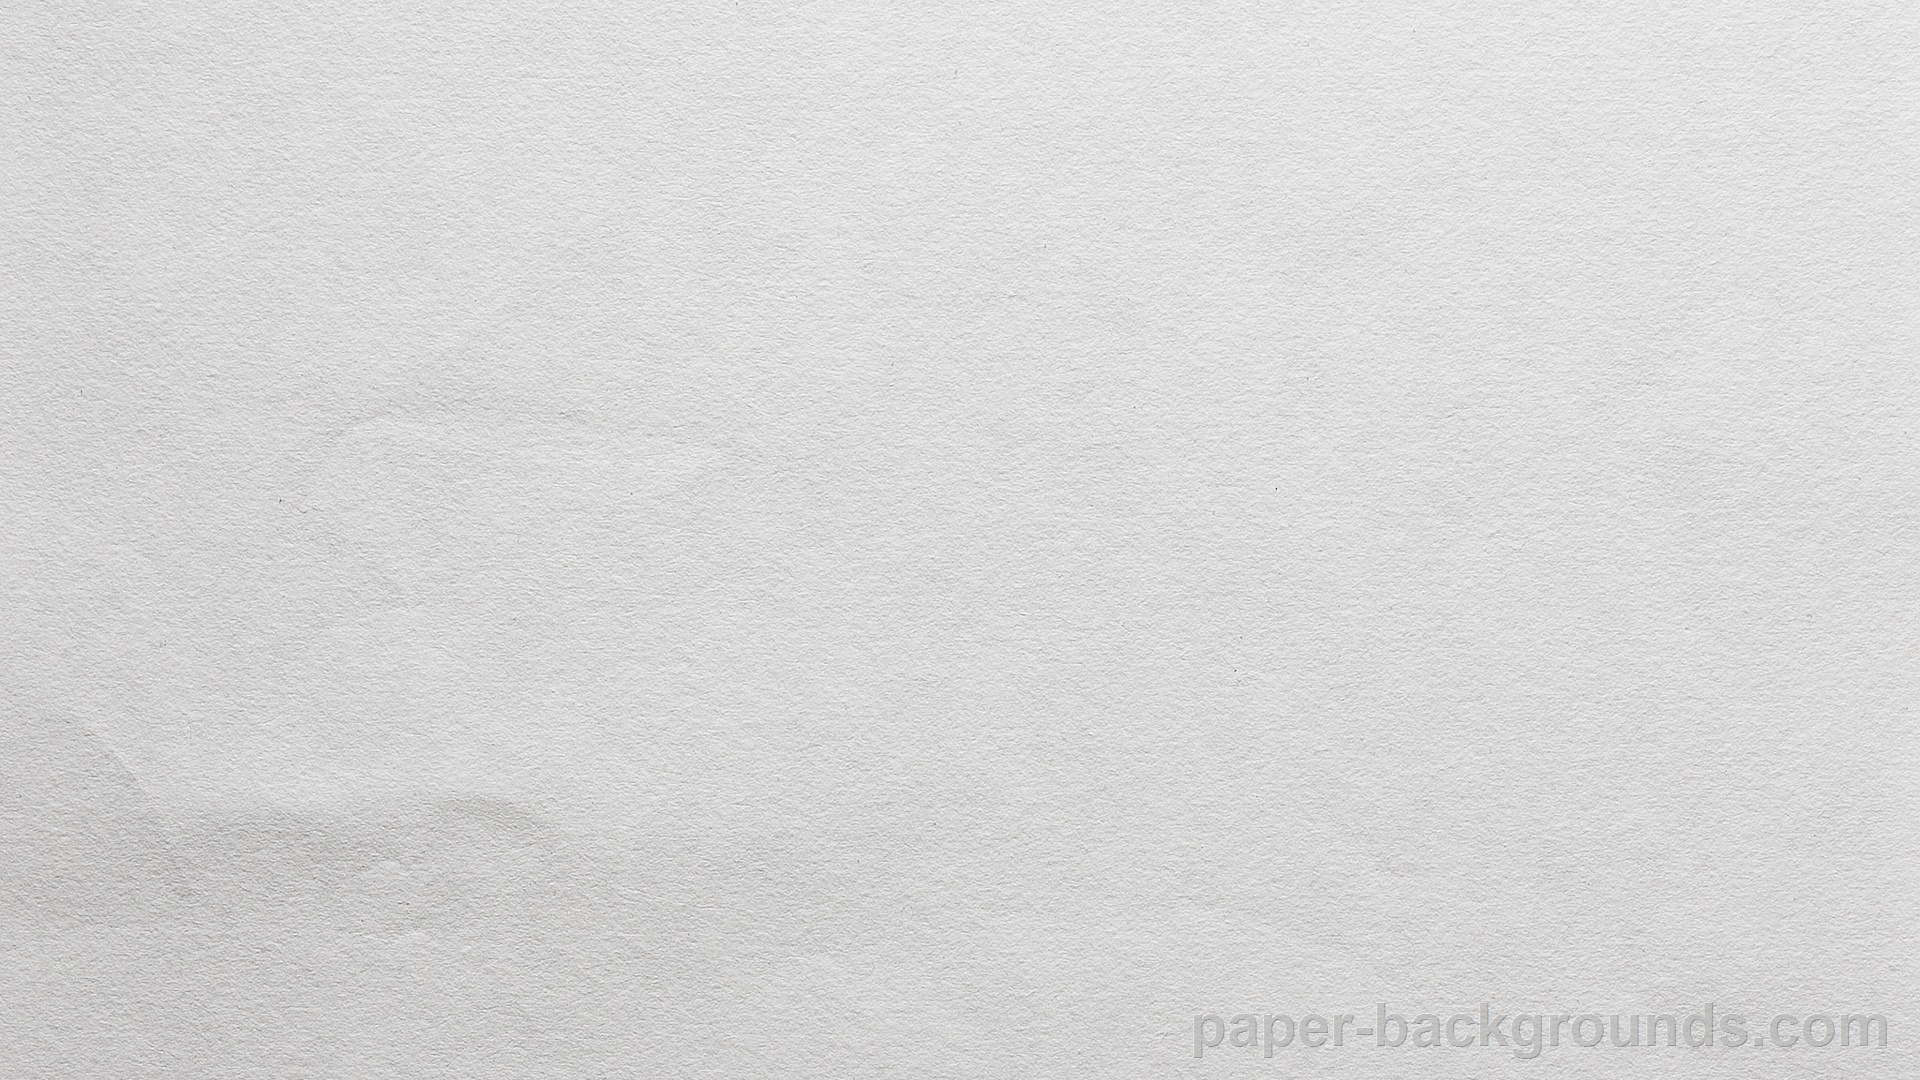 White Textured Paper Background HD